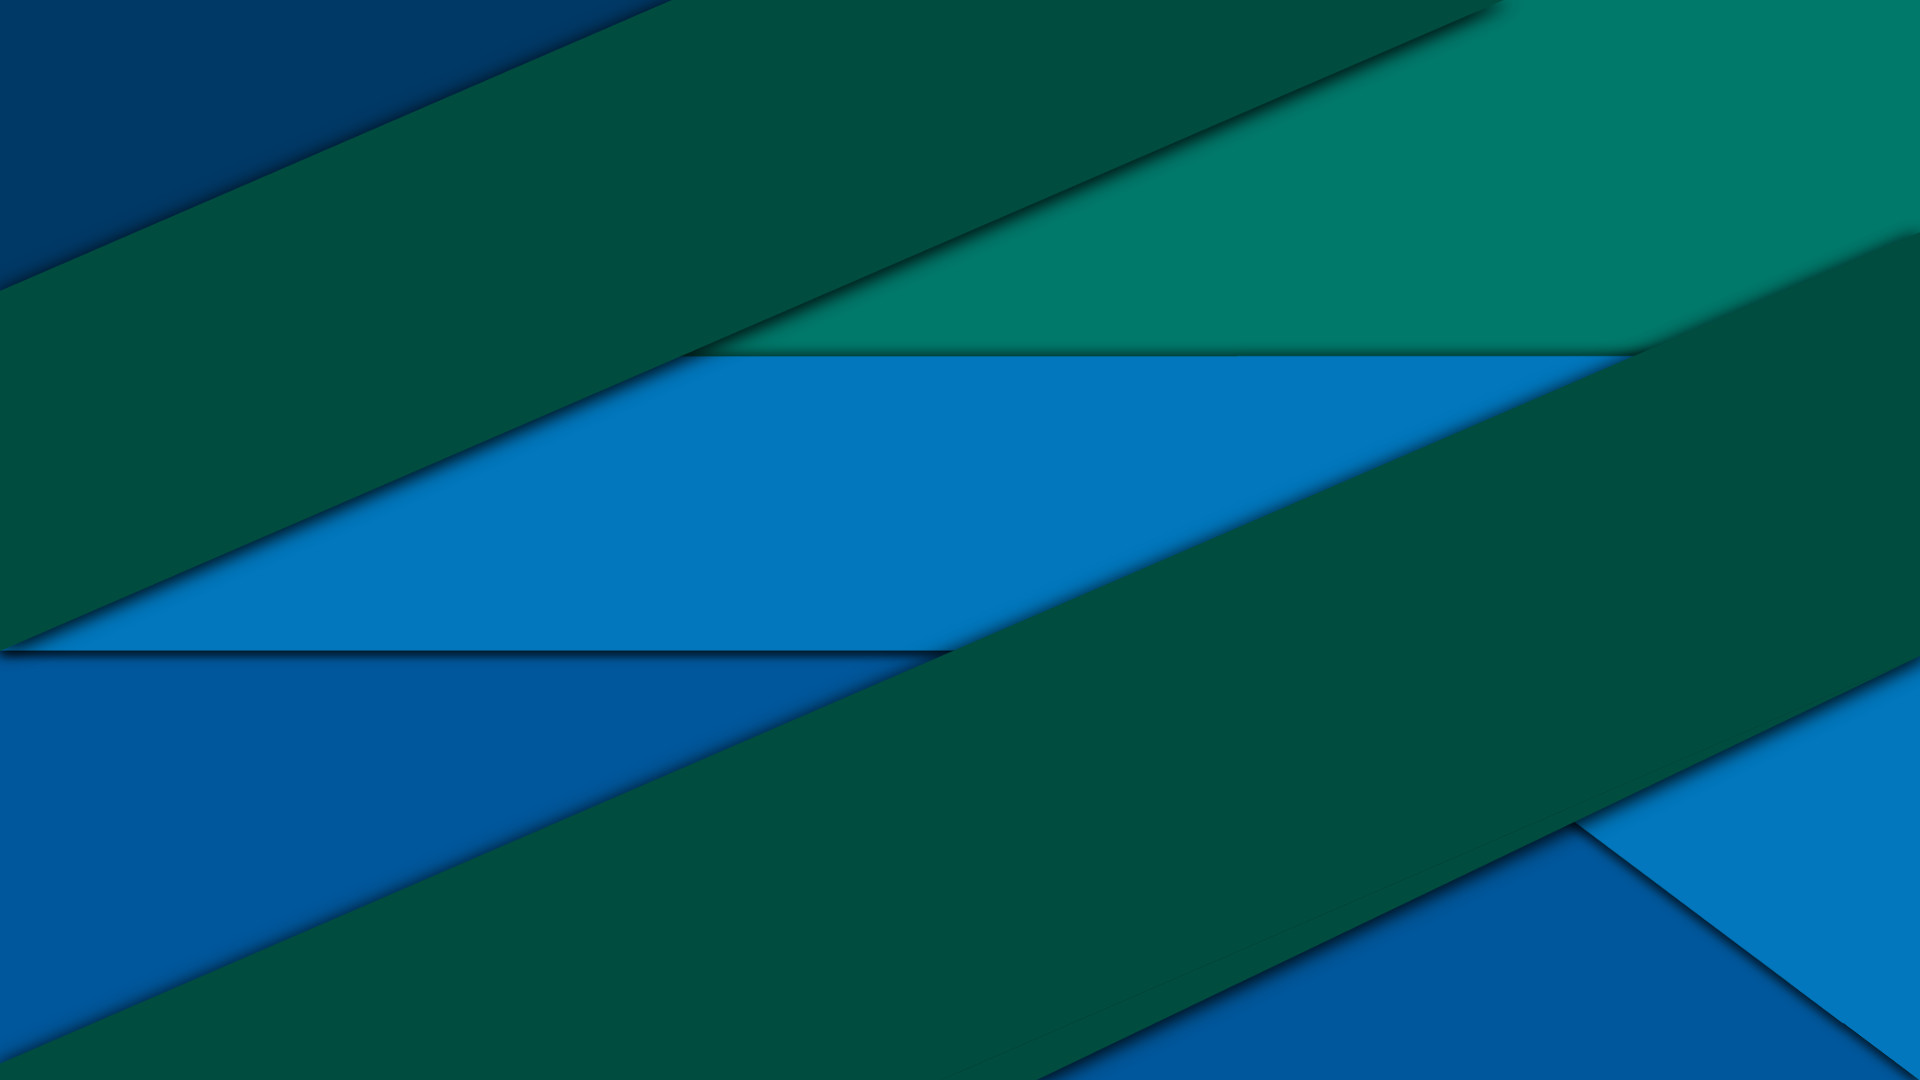 10. Blue and Green Material Design Wallpaper